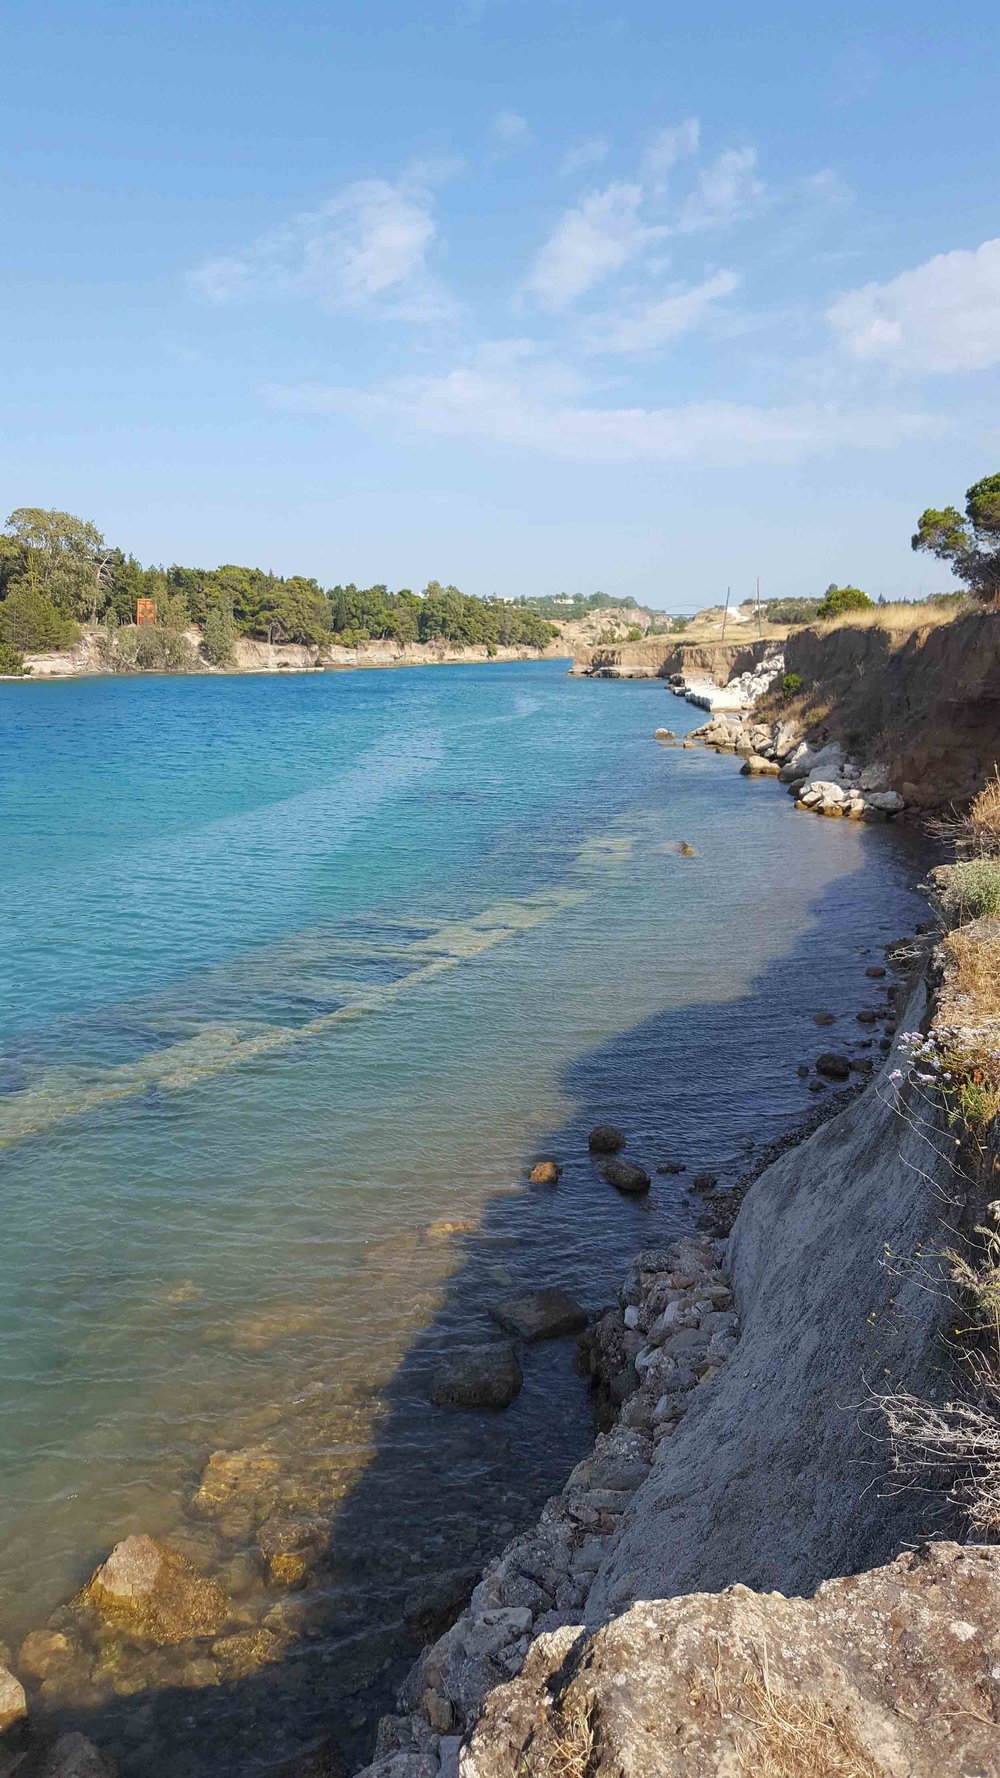 Corinth canal and diolkos underwater.jpg